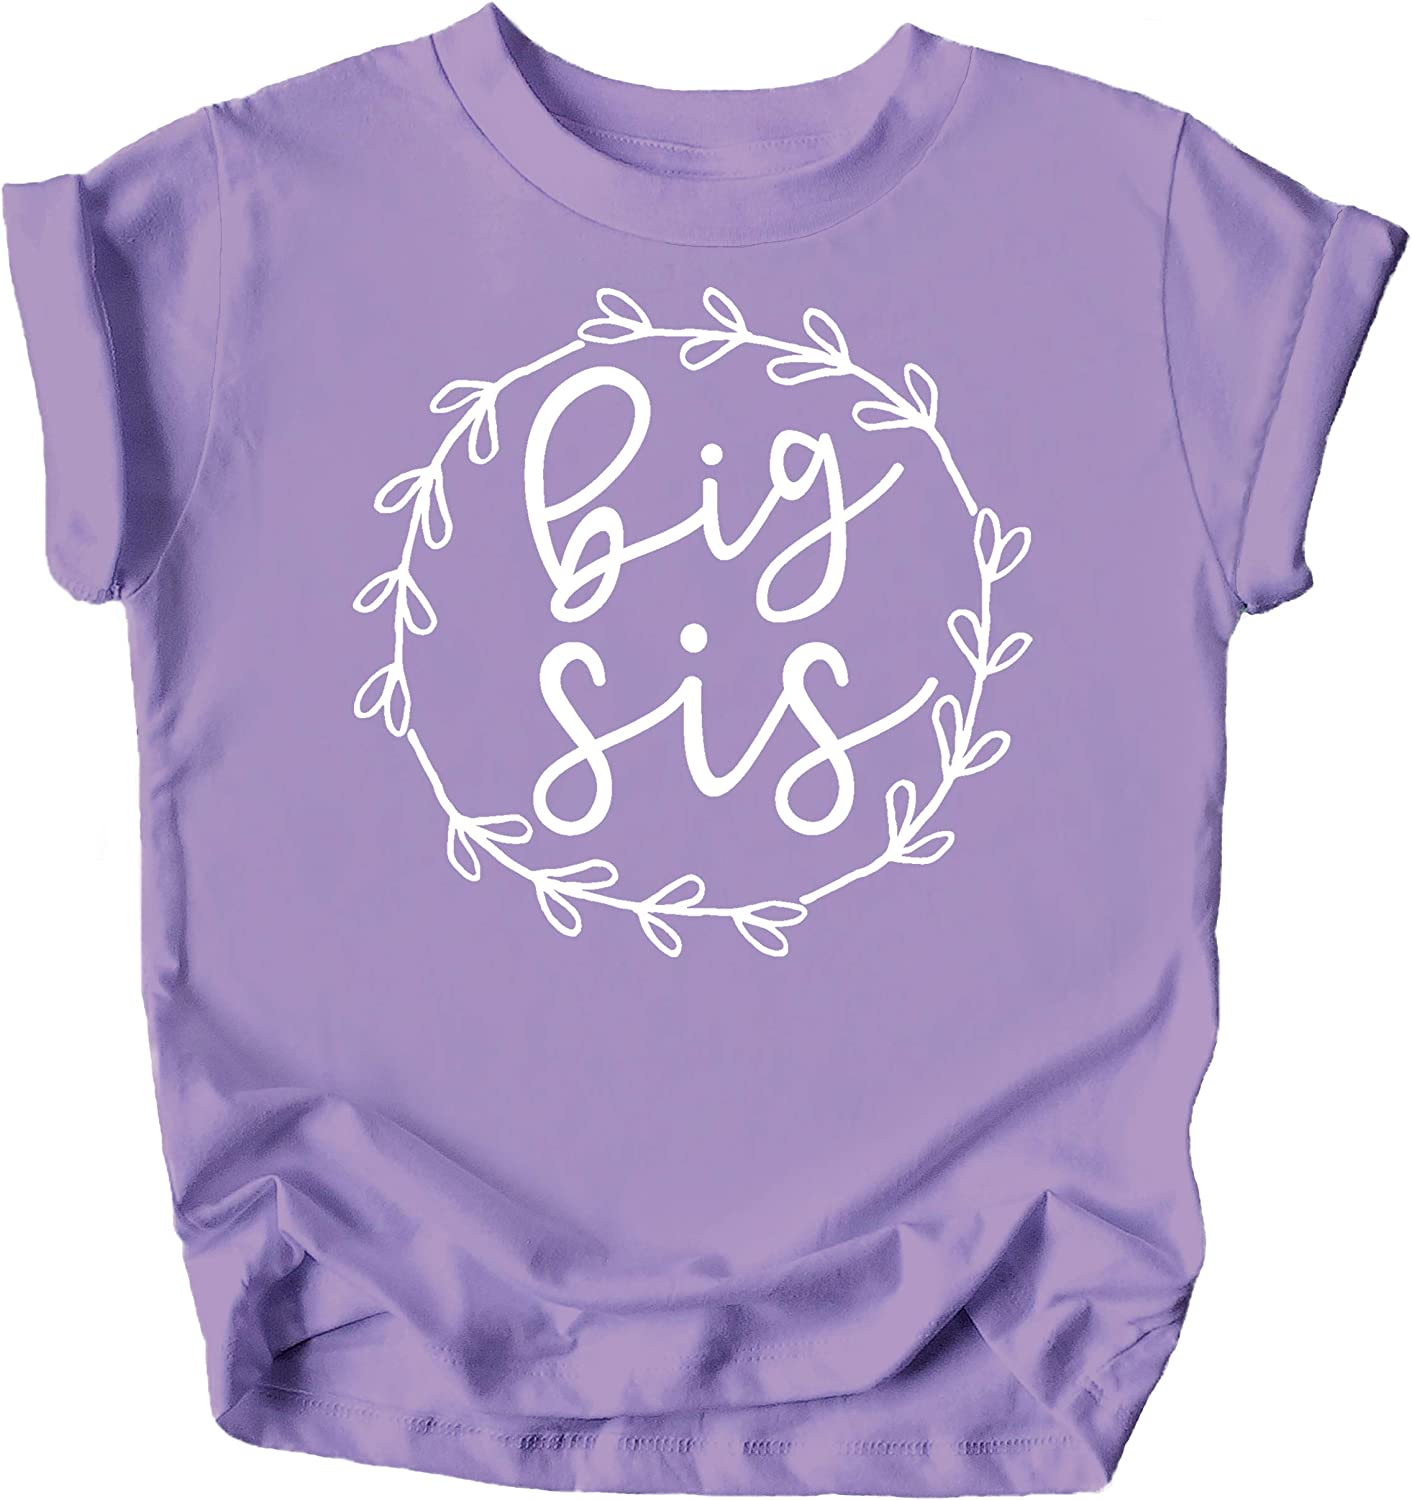 Olive Loves Apple Big Sis Lil Sis T-Shirts and Bodysuits for Baby and Toddler Girls Sibling Outfits